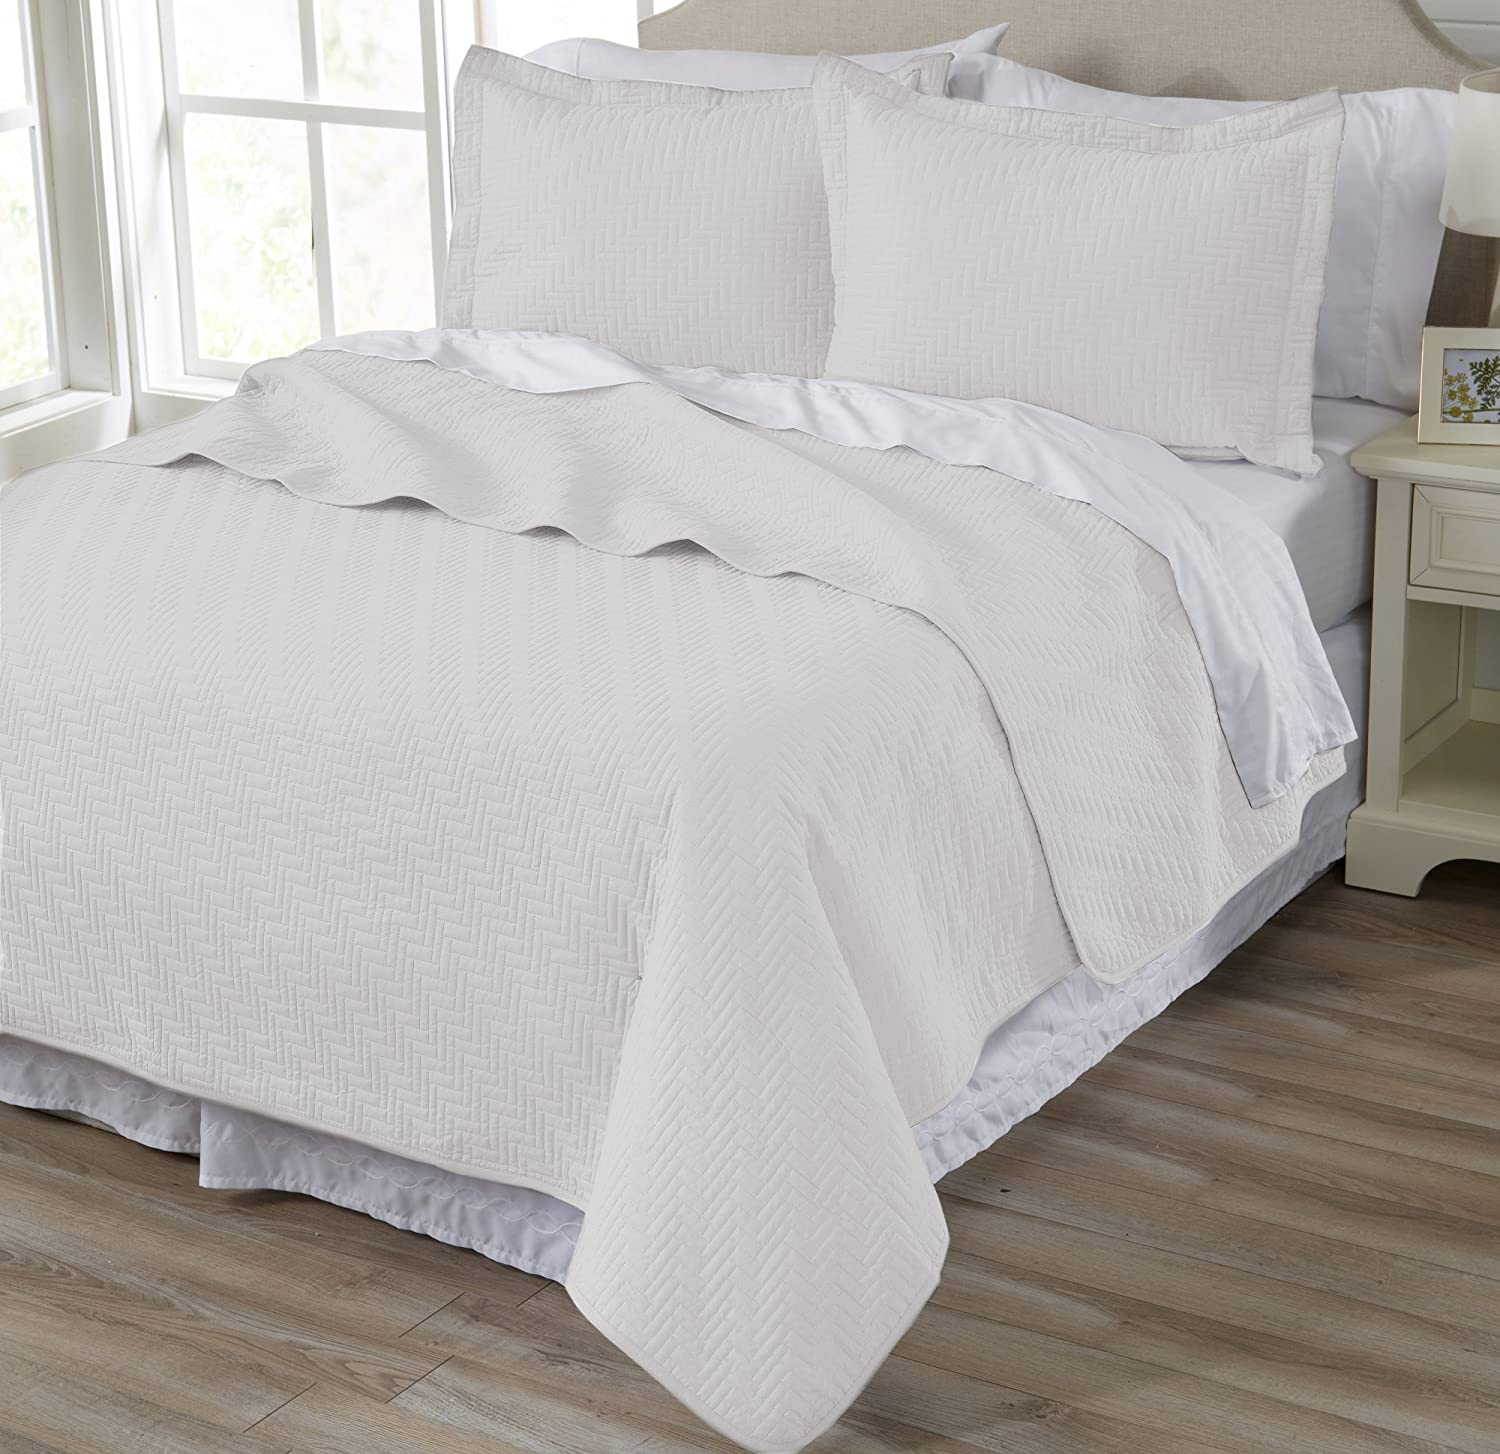 Home Fashion Designs 2-Piece All Season Quilt Set. Twin Size Quilt with 1 Sham. Soft Microfiber Bedspread and Coverlet. Emerson Collection (Cloud Grey)